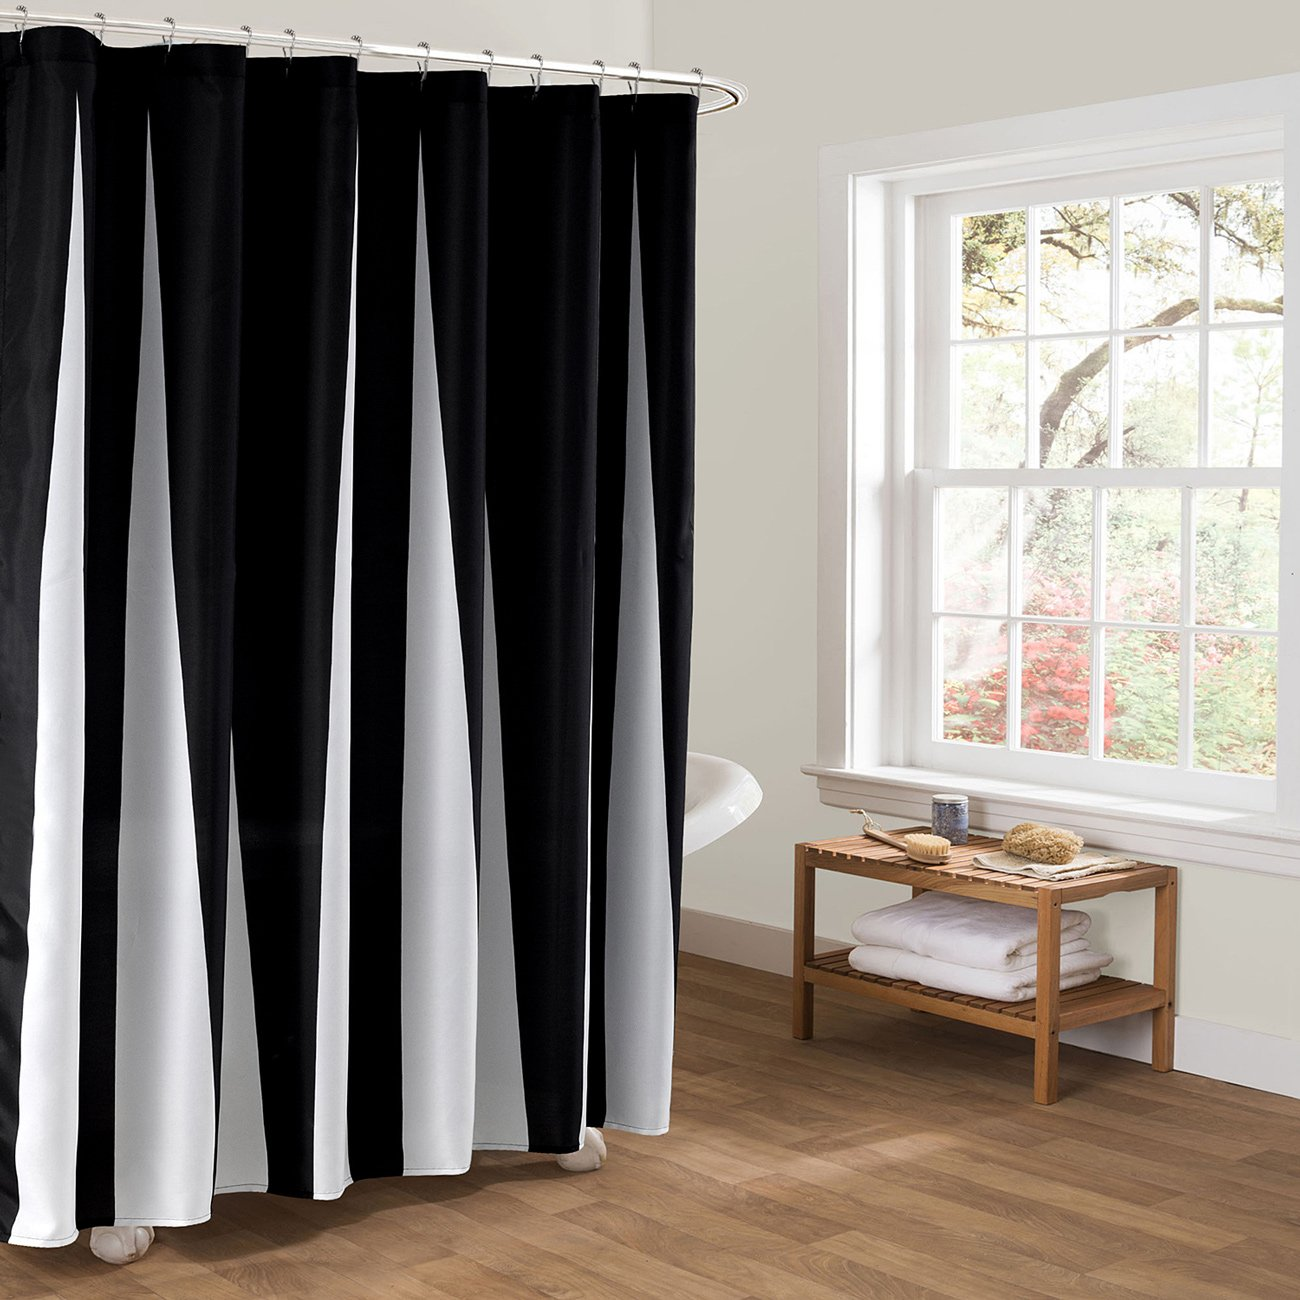 KINDOBEST Black and White Piano Keyboard Pattern Shower Curtains for Bathroom Waterproof